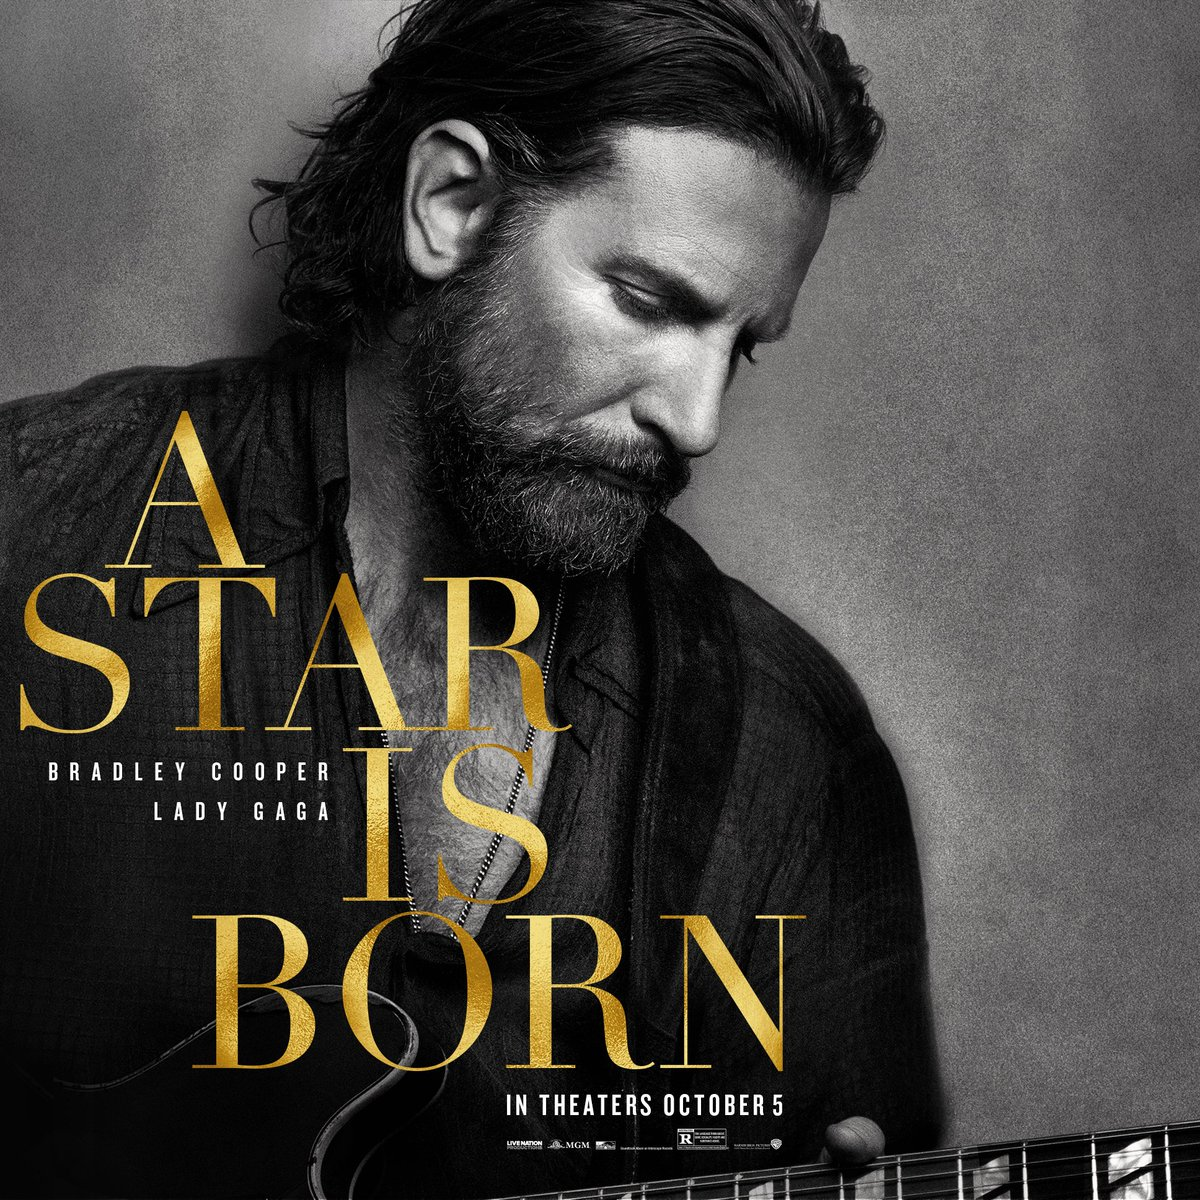 Lady Gaga, Bradley Cooper sing in 'A Star Is Born' trailer